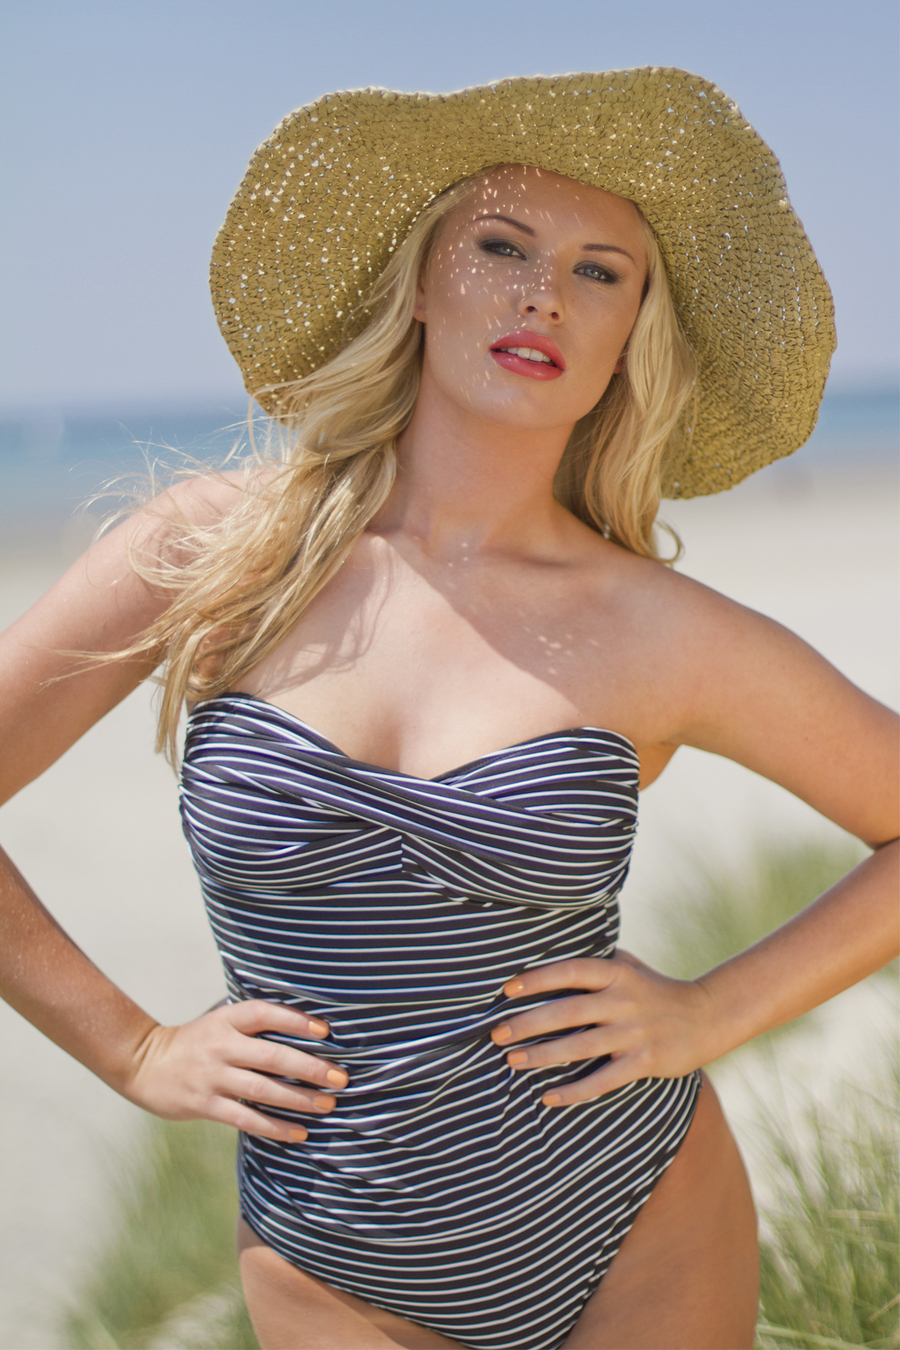 Beach Shoot / Photography by Panons Photography / Uploaded 10th September 2013 @ 04:02 PM